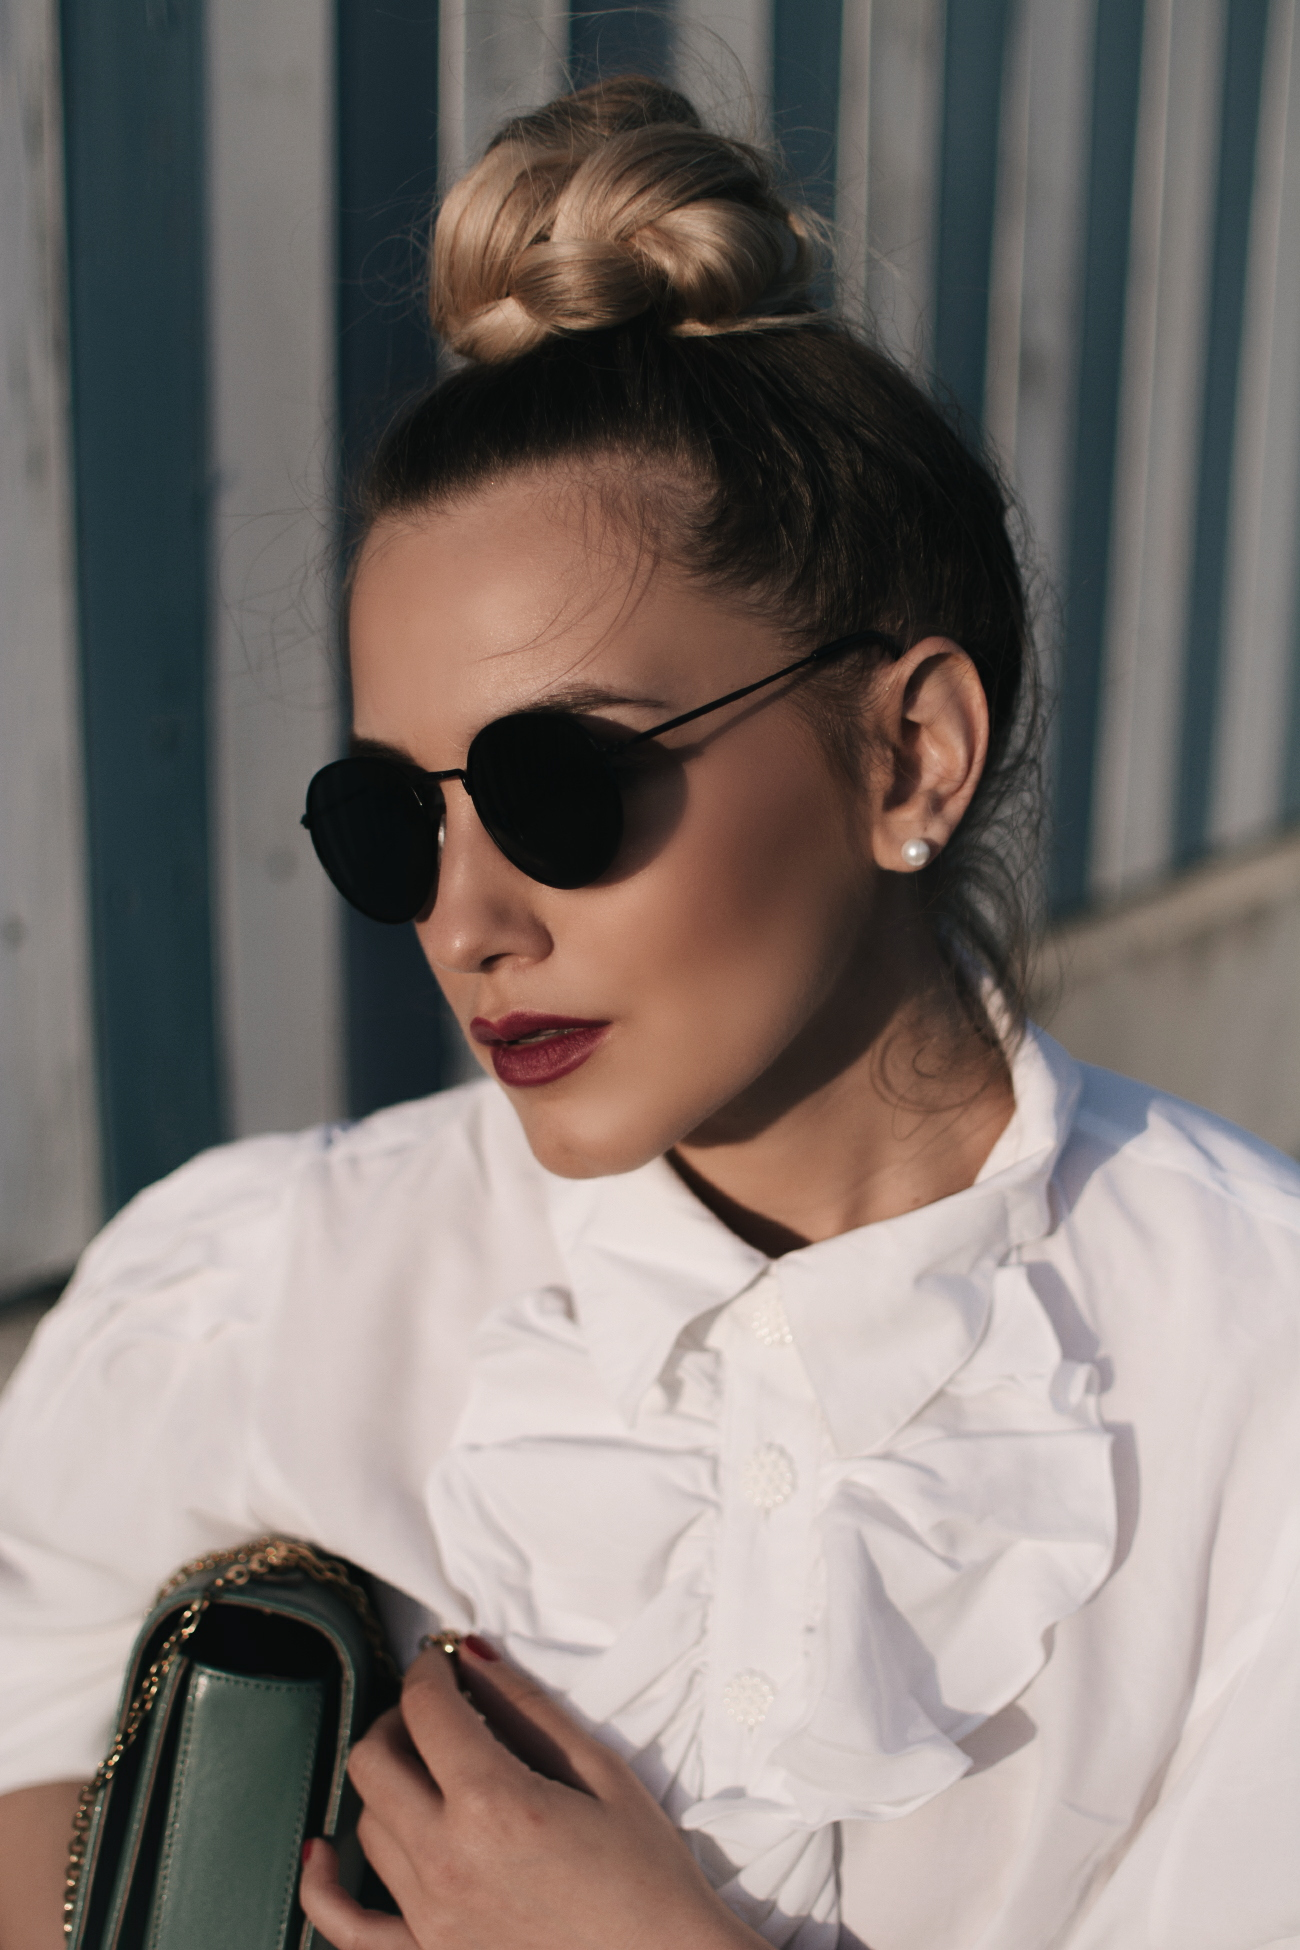 Black round sunglasses & braided dutt via @fleurdemode